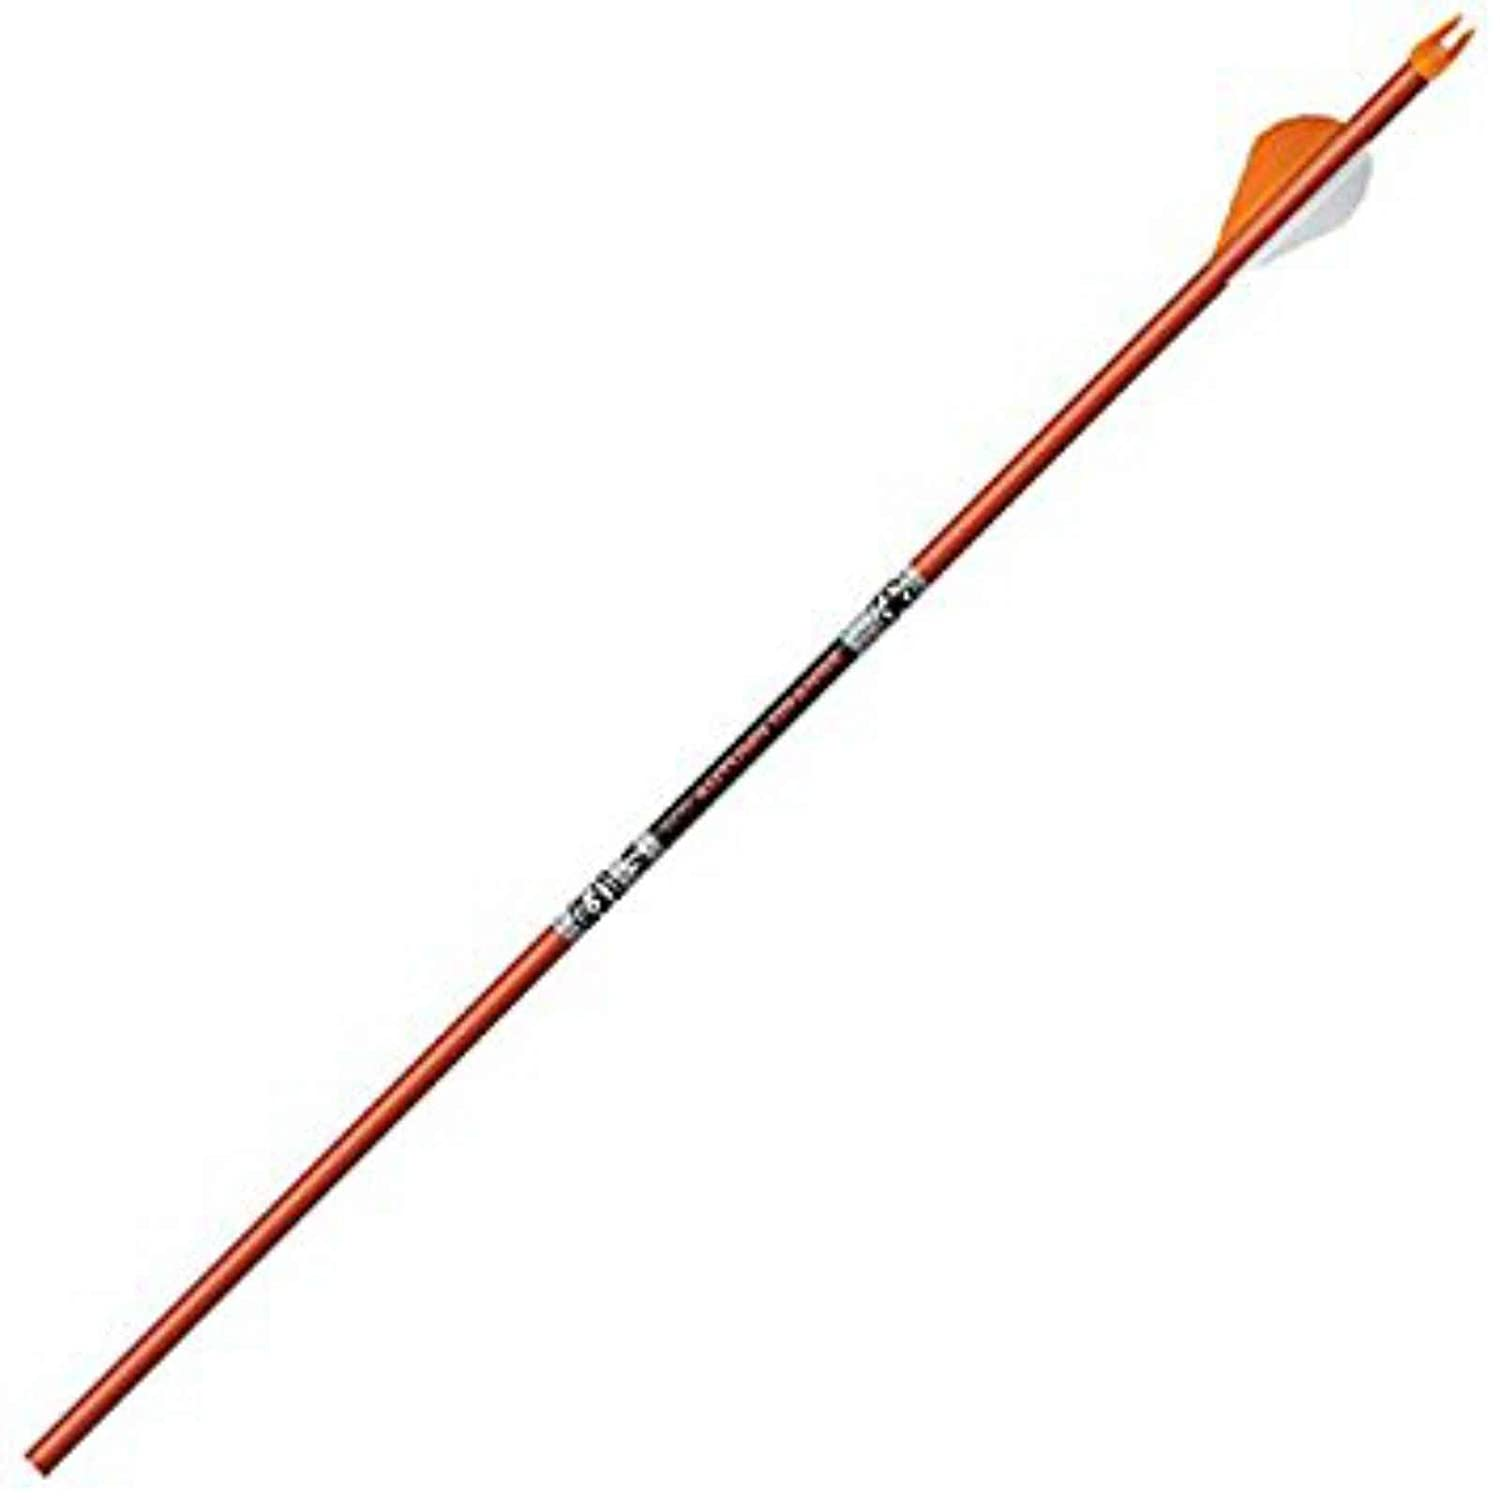 Easton 6mm FMJ Arrows Autumn Blazers 6 PK Orange, 320